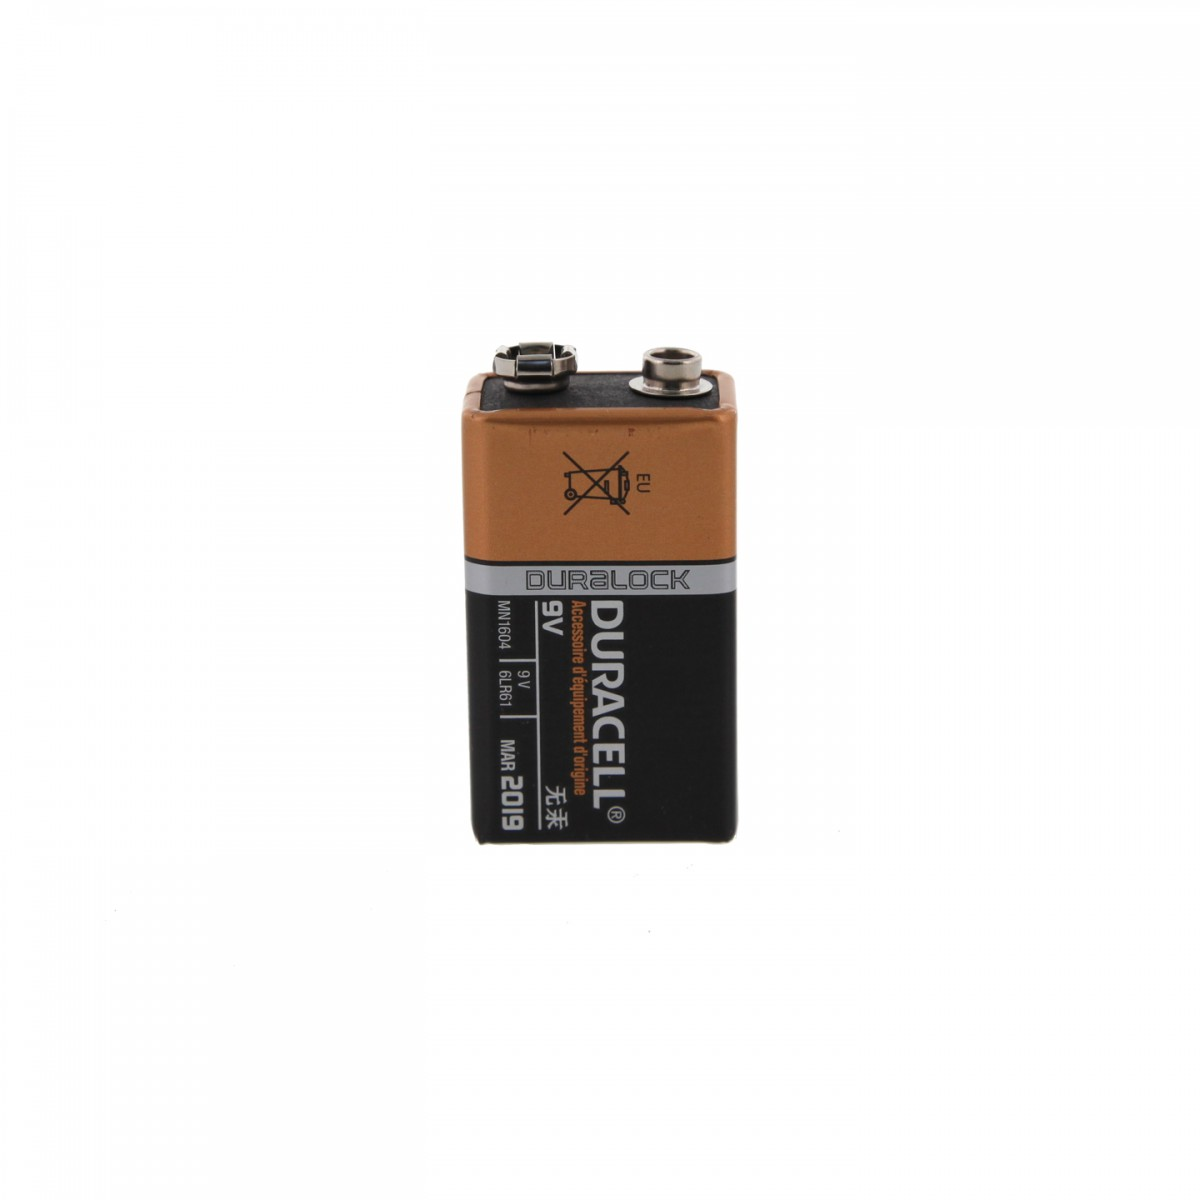 9 volt duracell batteries buy online for less. Black Bedroom Furniture Sets. Home Design Ideas